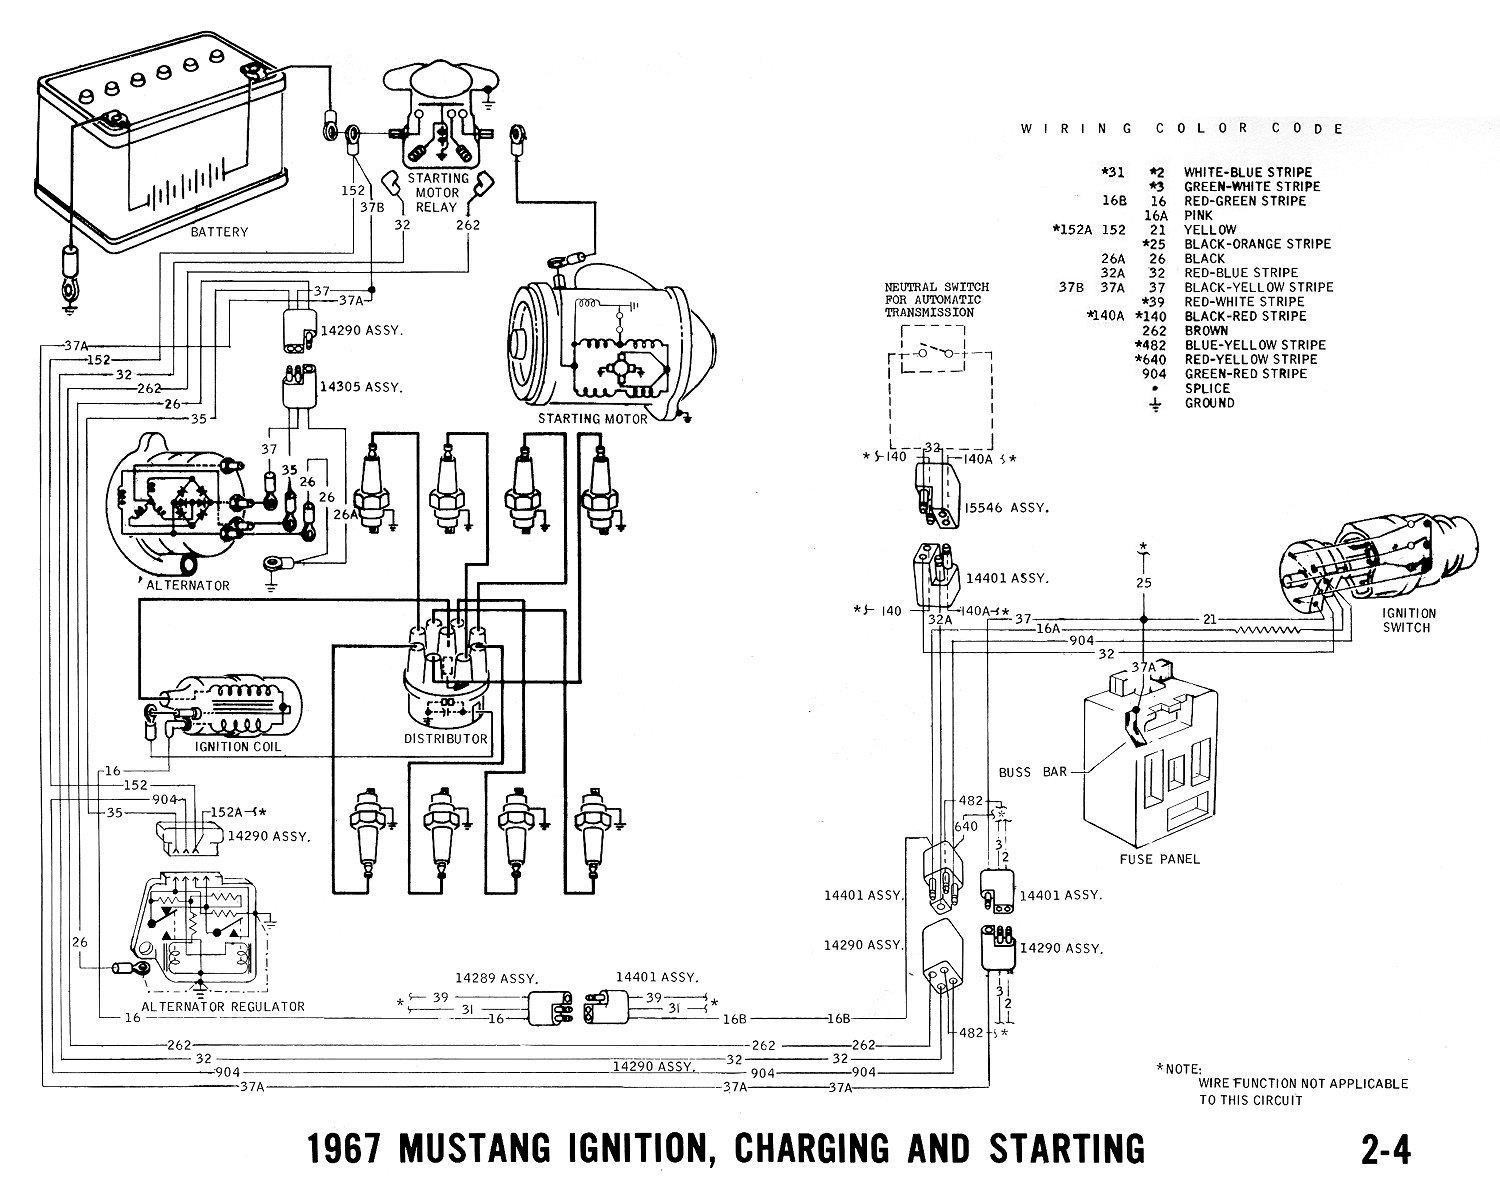 67 mustang voltage regulator location free download wiring diagram rh prevniga co 1967 Mustang Schematics 1975 Mustang Ignition Wiring Diagram